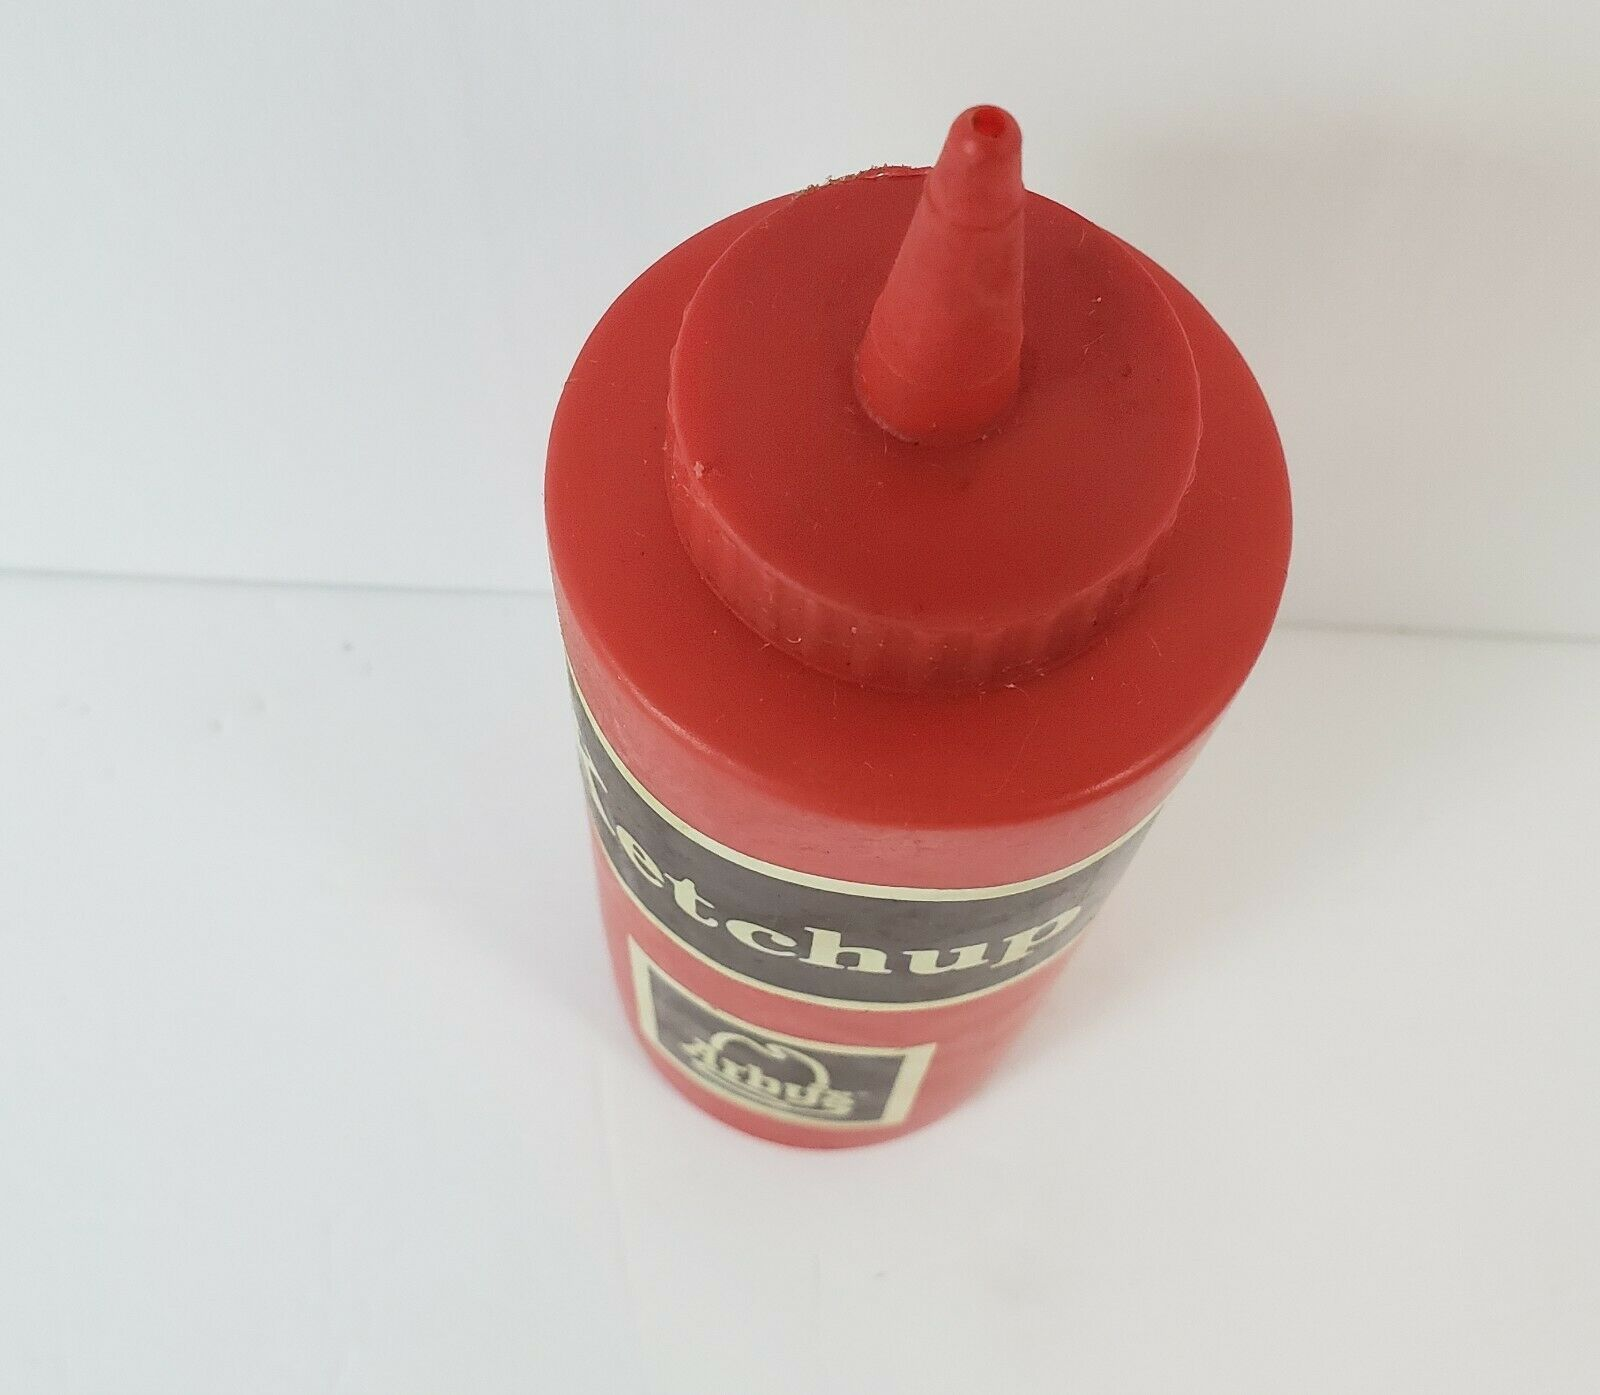 "Vintage Arby's Ketchup Squeeze Bottle - 1970's - Advertising - 7.5"" Tall image 4"